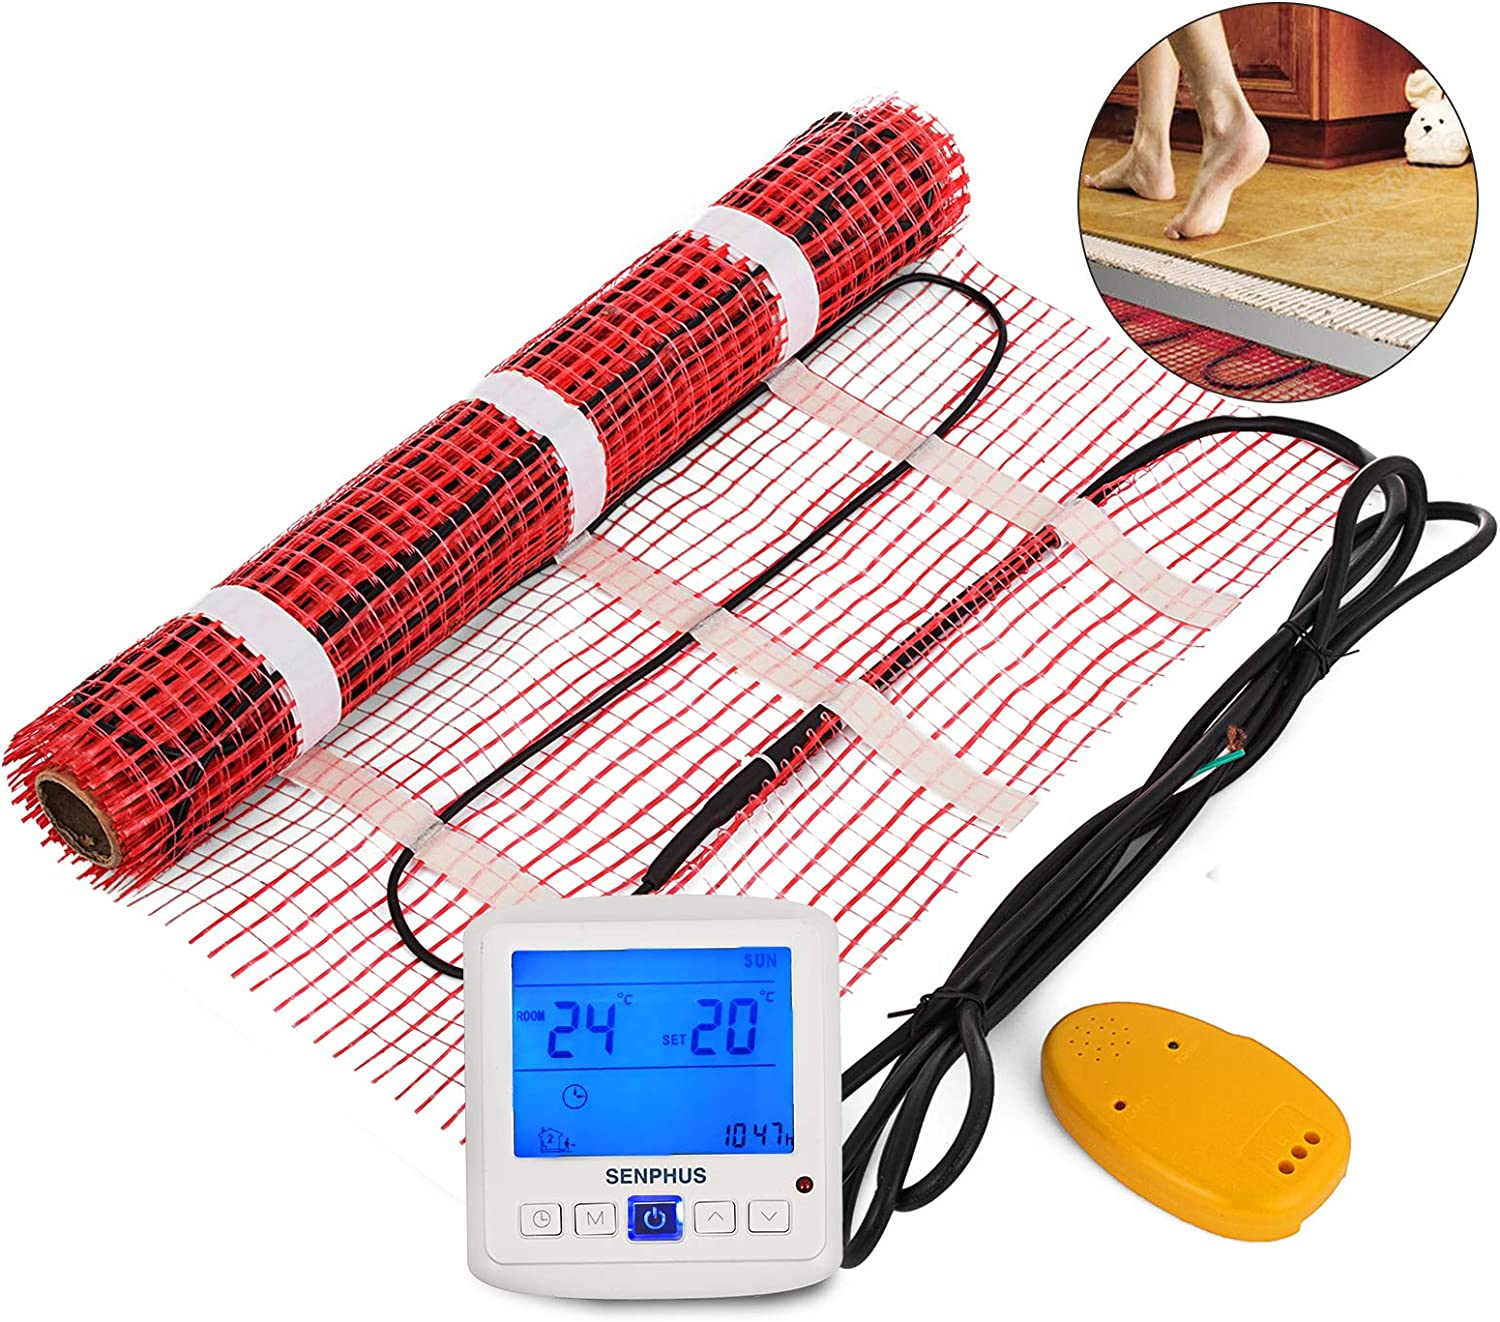 Happybuy 90 Sqft 120V Electric Radiant Floor Heating Mat with Alarmer and Programmable Floor Sensing Thermostat Self-Adhesive Mesh Underfloor Heat Warming Systems Mats Kit (90Sqft Kit)